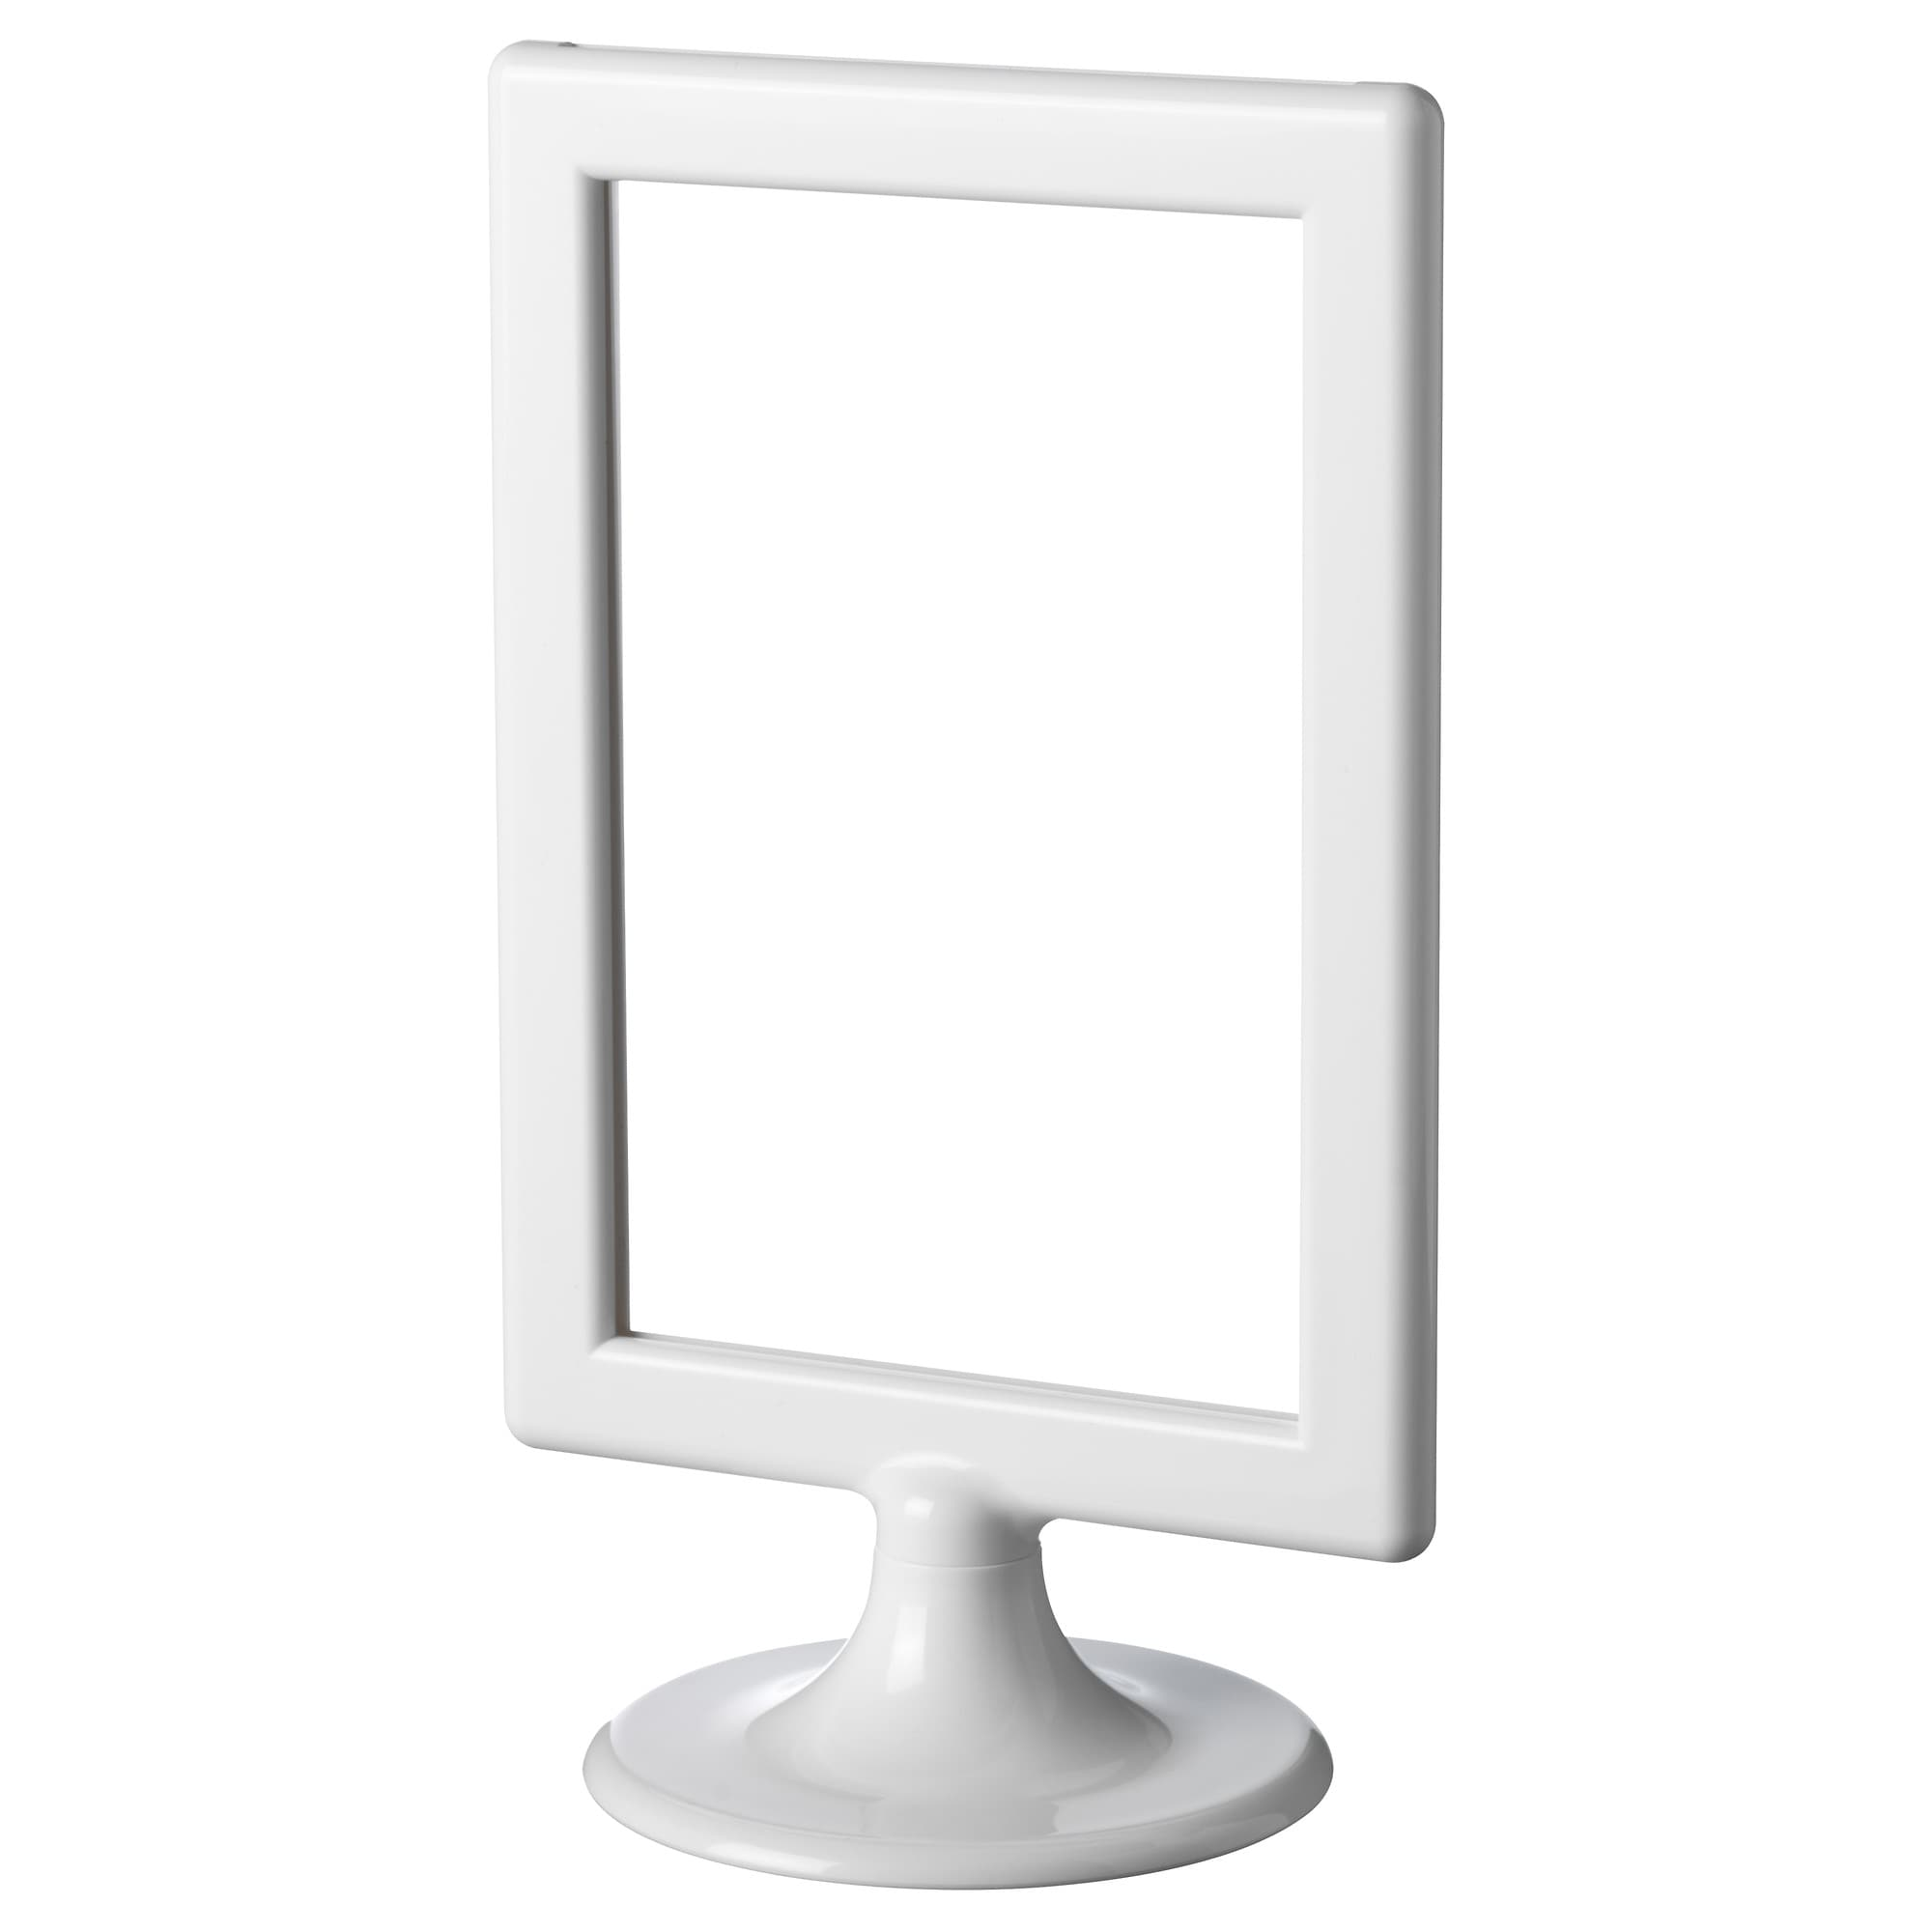 Tolsby Frame For 2 Pictures White Education Set Up Classroom